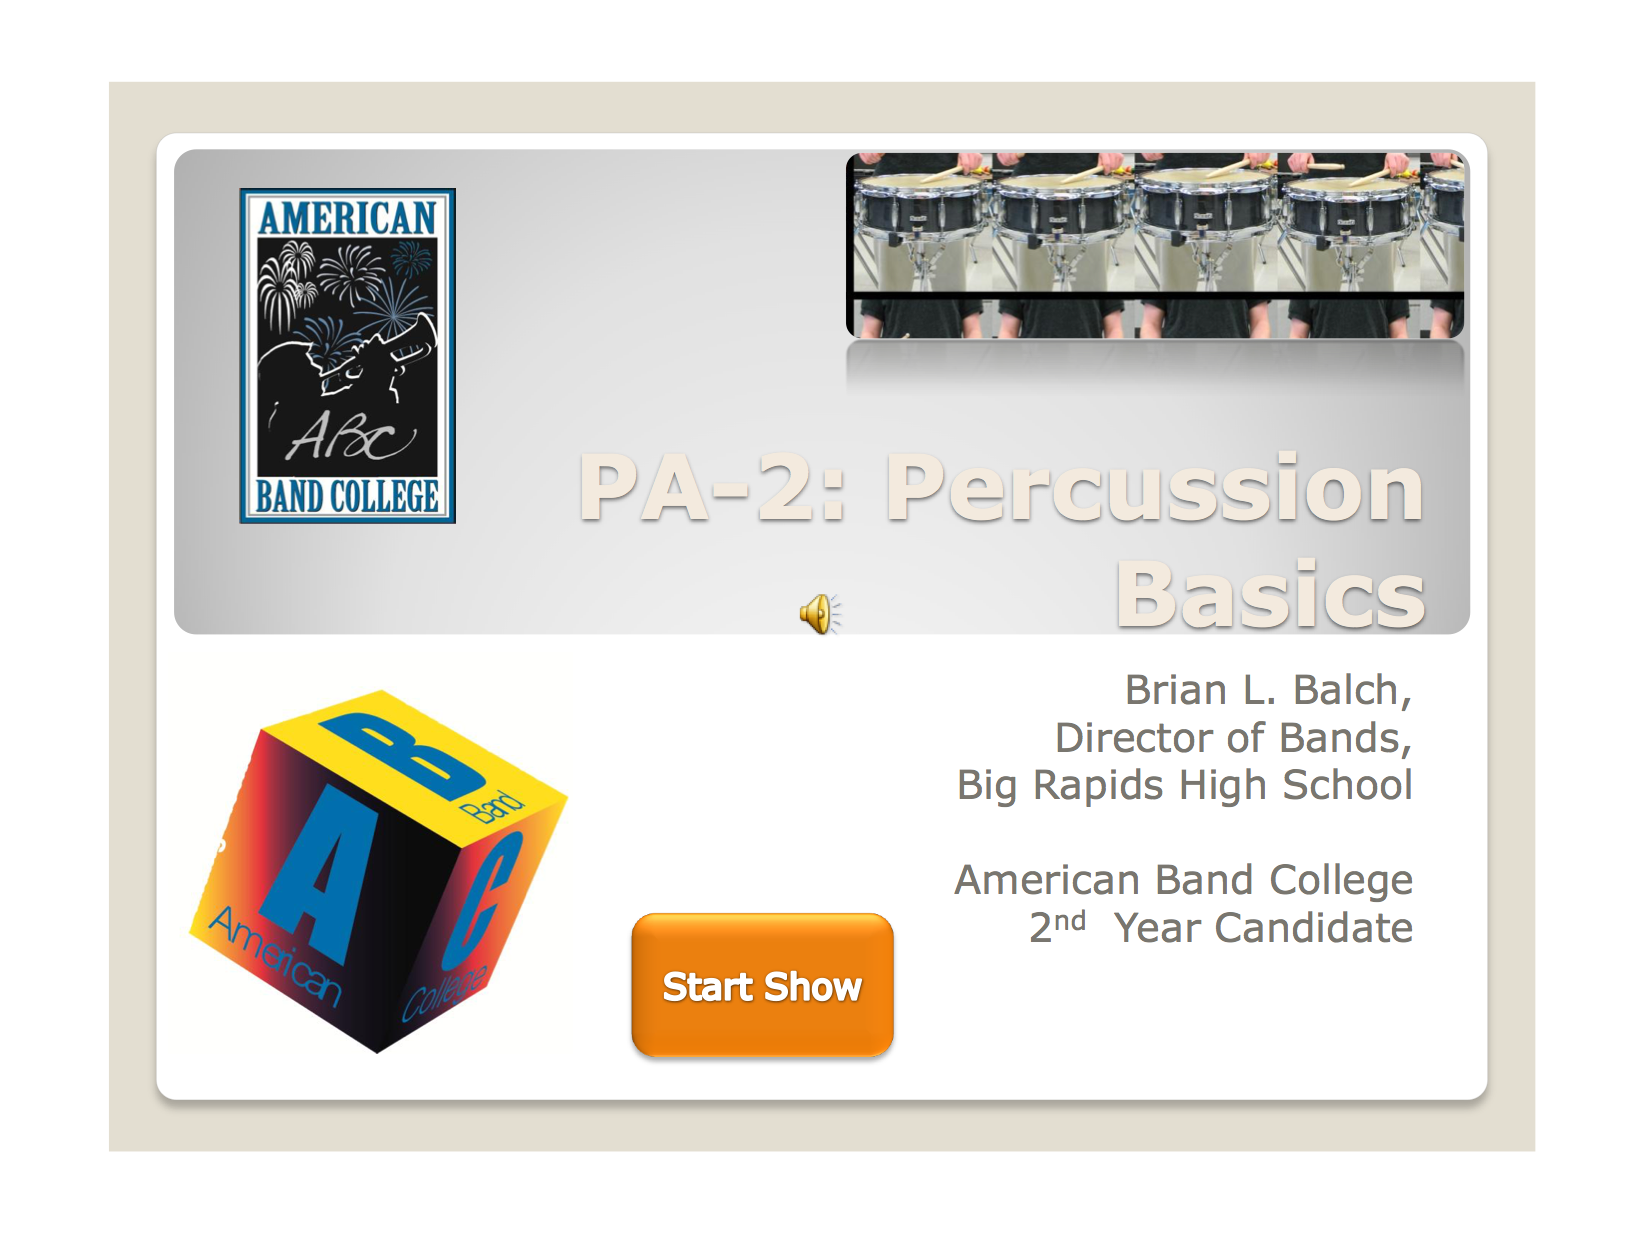 Percussion Basics By Brian Balch